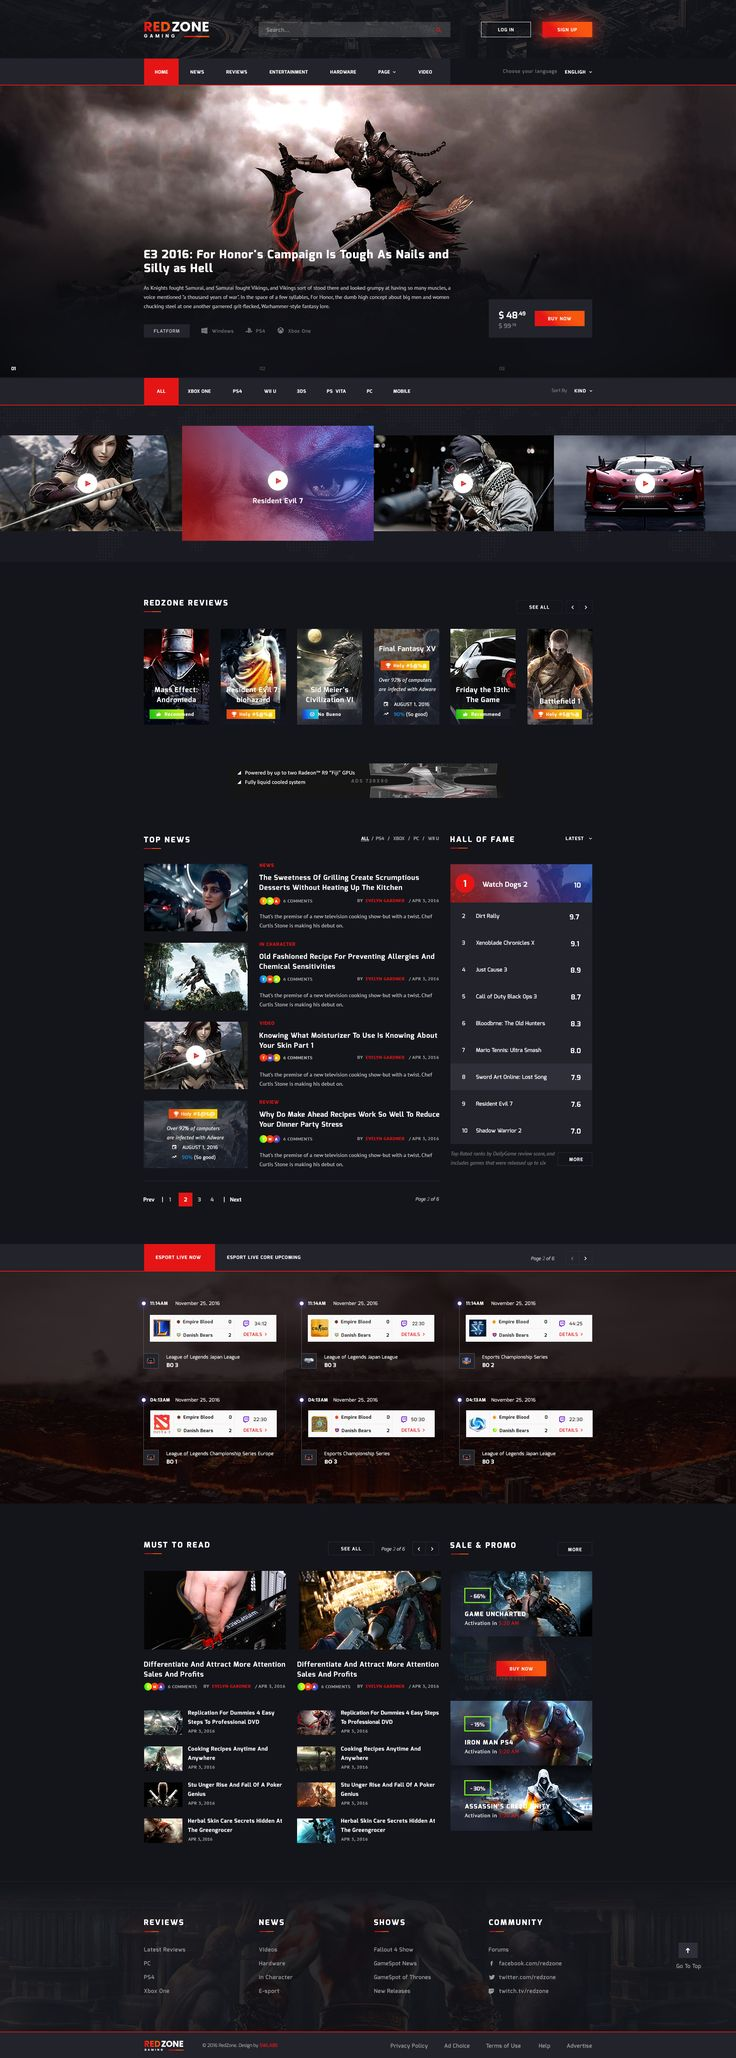 Red Zone - Game PSD Template (Blog, Review, Portal, Community) #psd #console #game review • Download ➝ https://themeforest.net/item/red-zone-game-psd-template-blog-review-portal-community/18643234?ref=pxcr